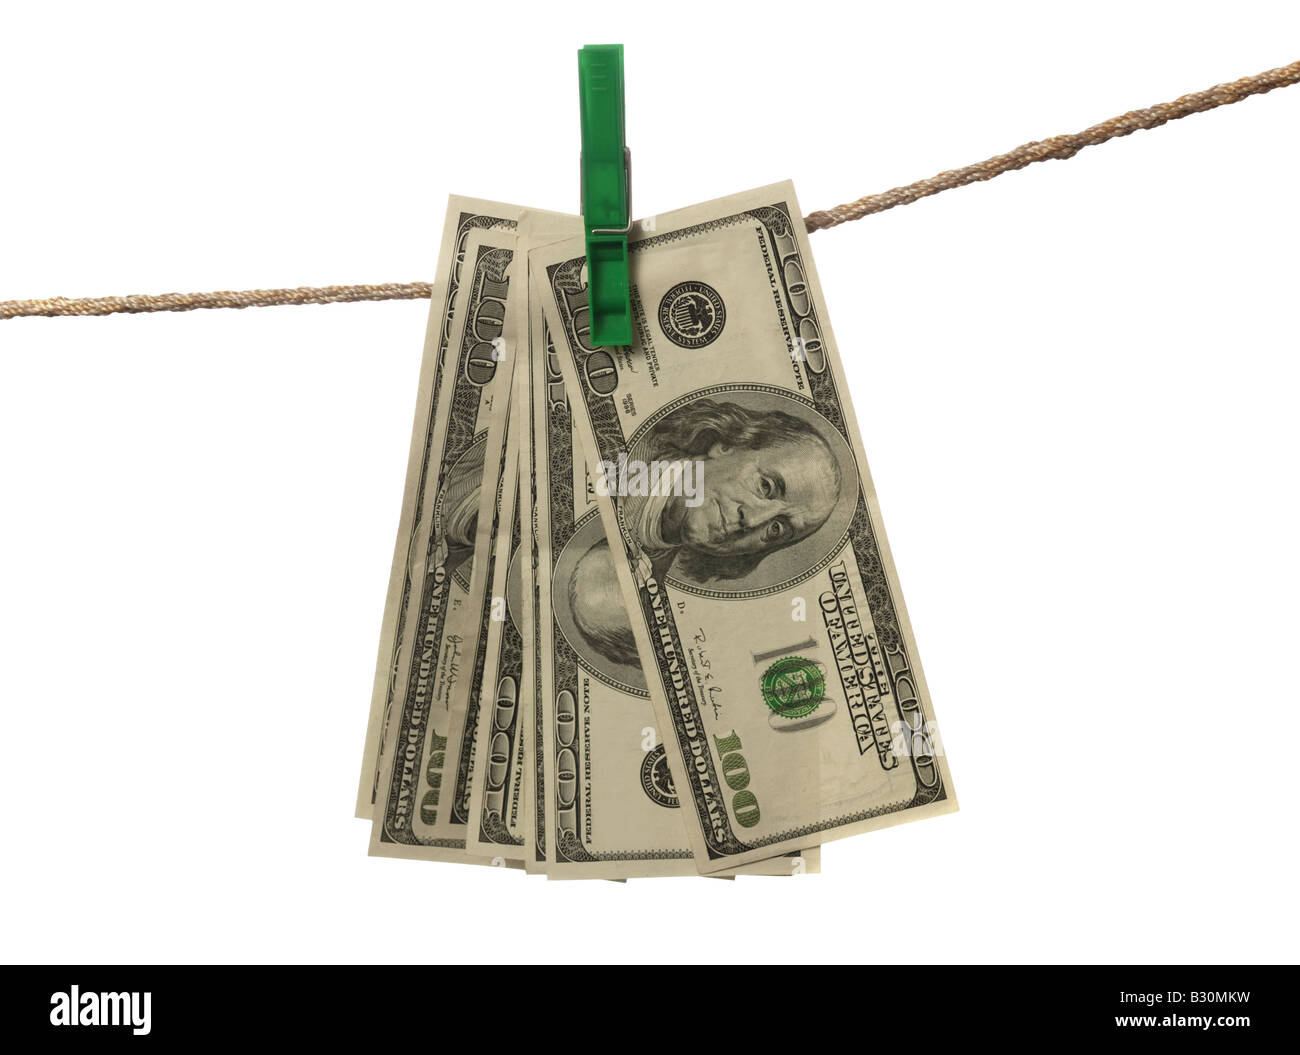 Money laundering Concept about illegally earned money - Stock Image